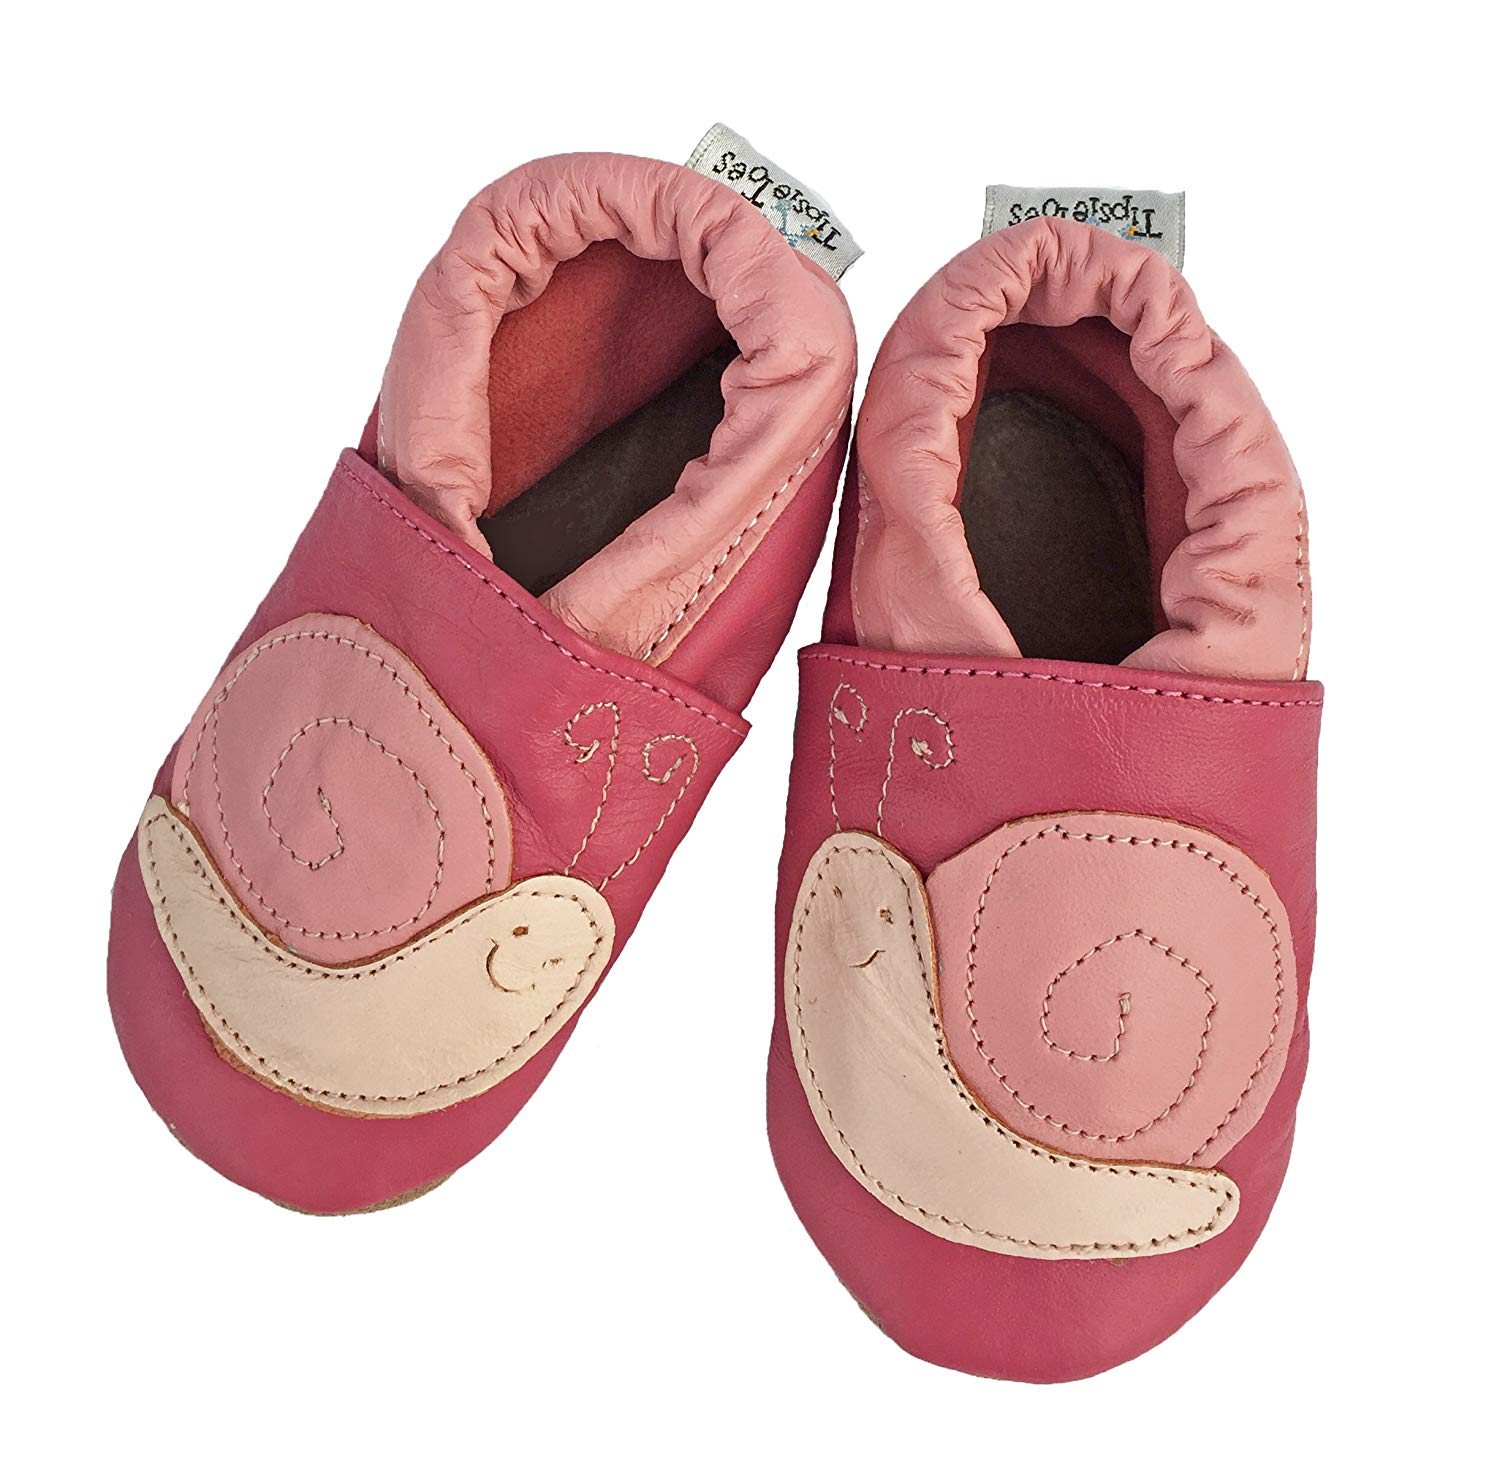 62979893f7cee Cheap Baby Blue Toes, find Baby Blue Toes deals on line at Alibaba.com